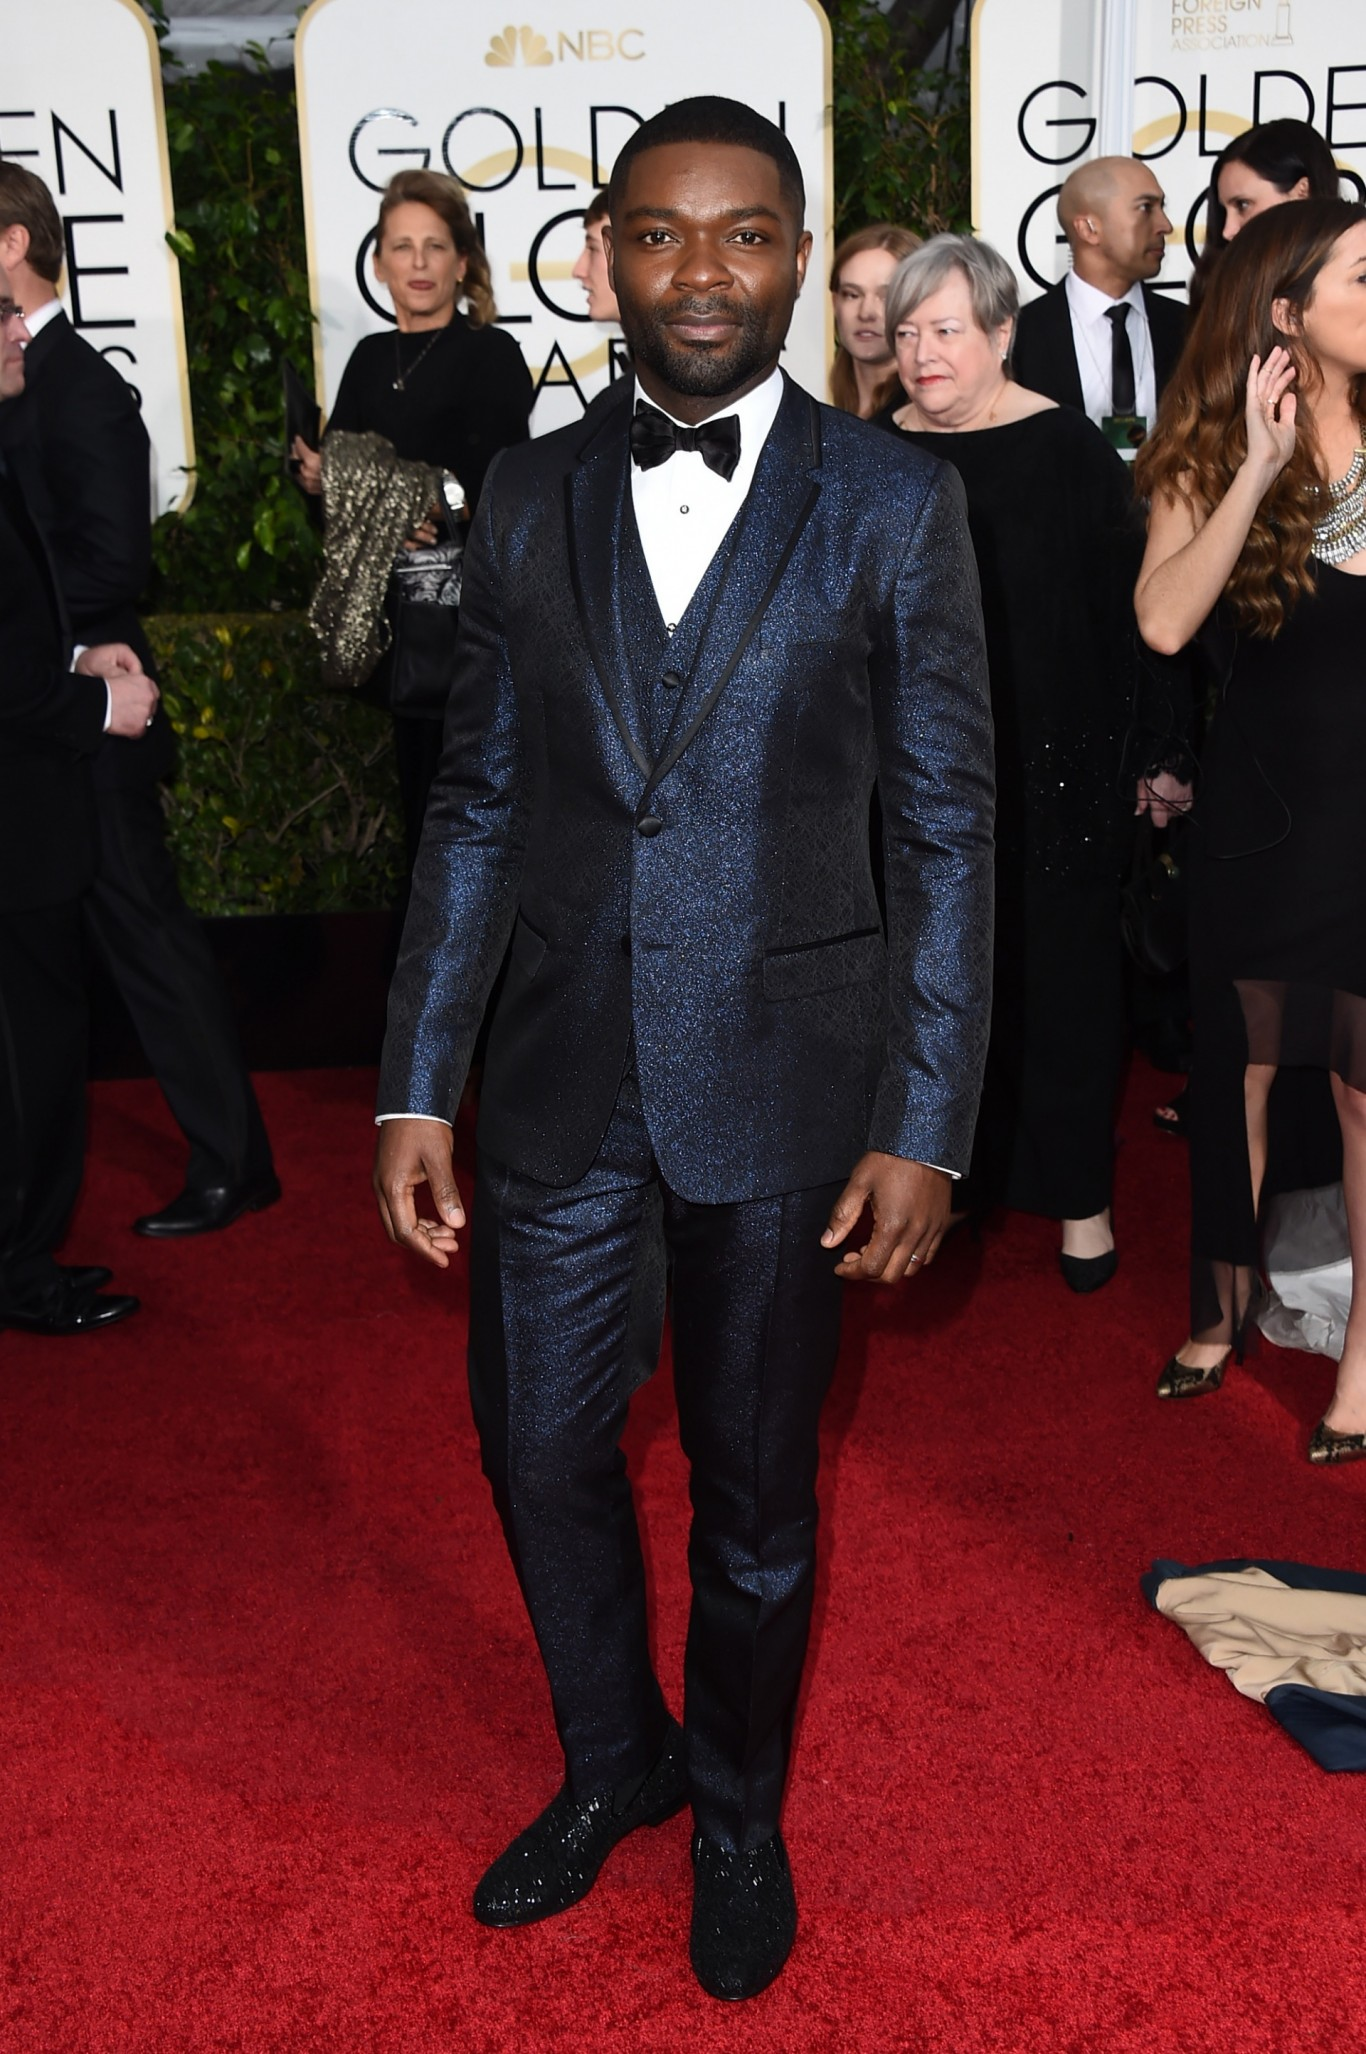 David Oyelowo BEST PERFORMANCE BY AN ACTOR IN A MOTION PICTURE – DRAMA